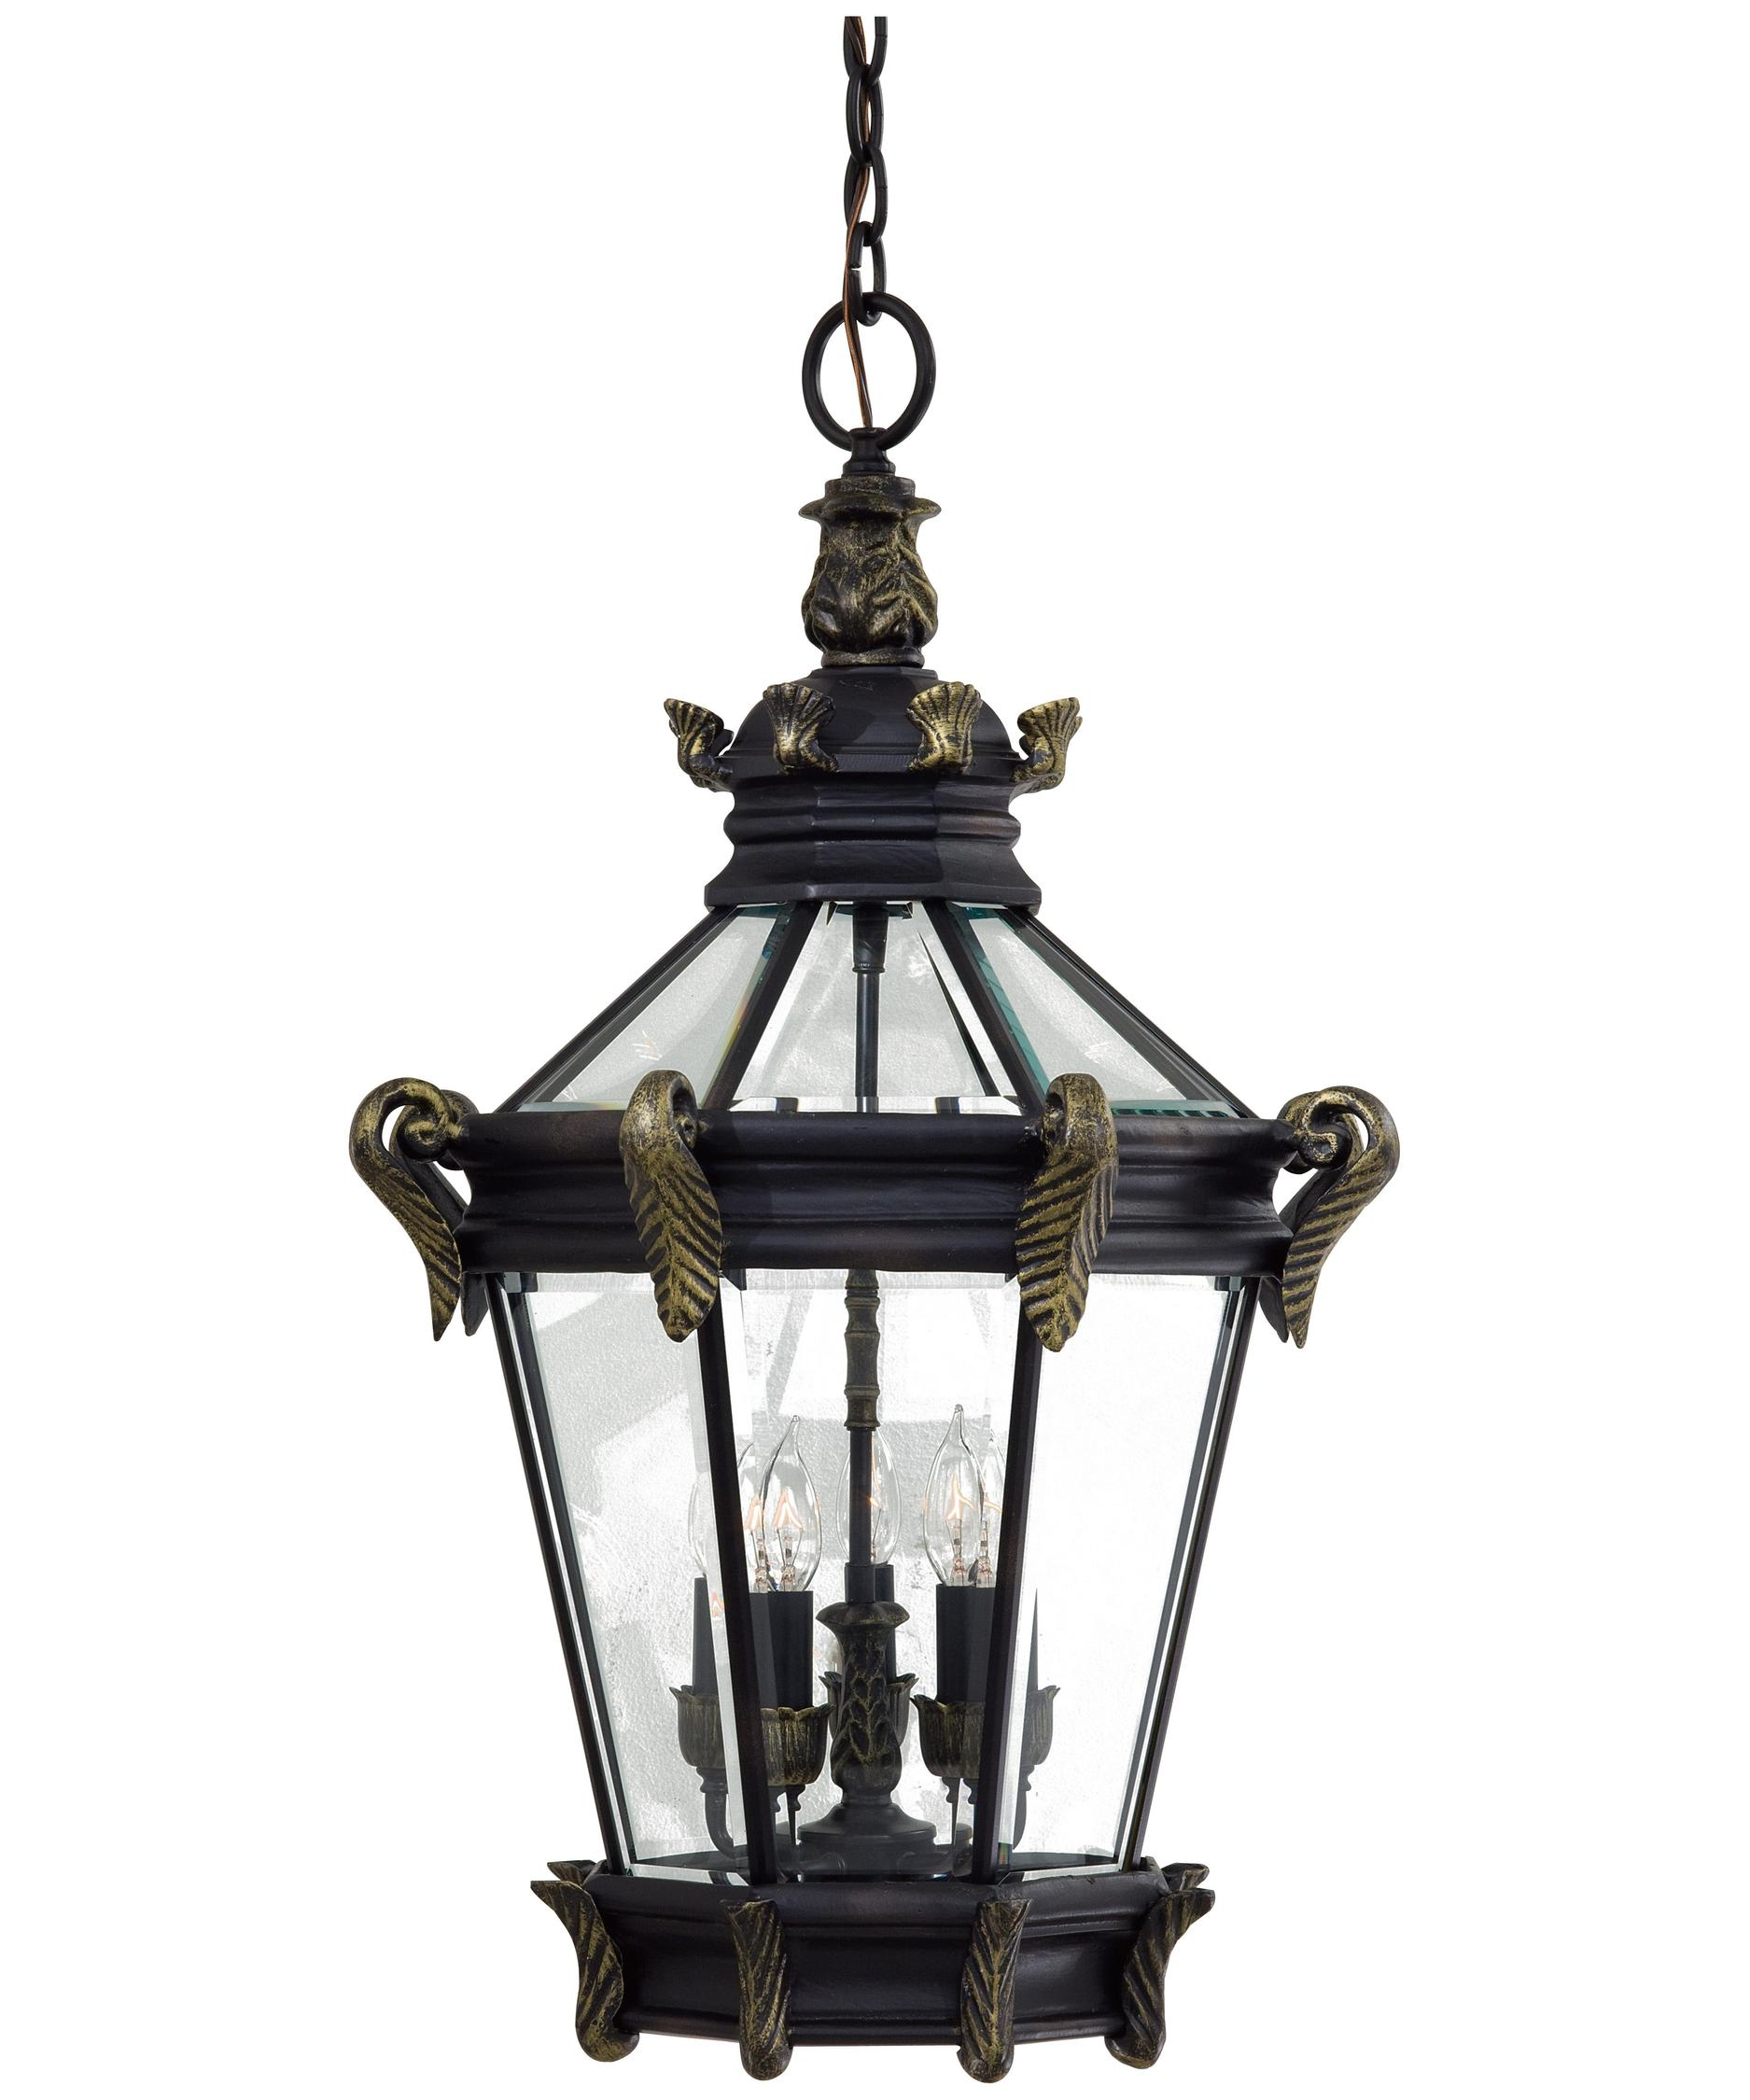 Outdoor hanging lamp - Shown In Heritage With Gold Finish And Clear Beveled Glass